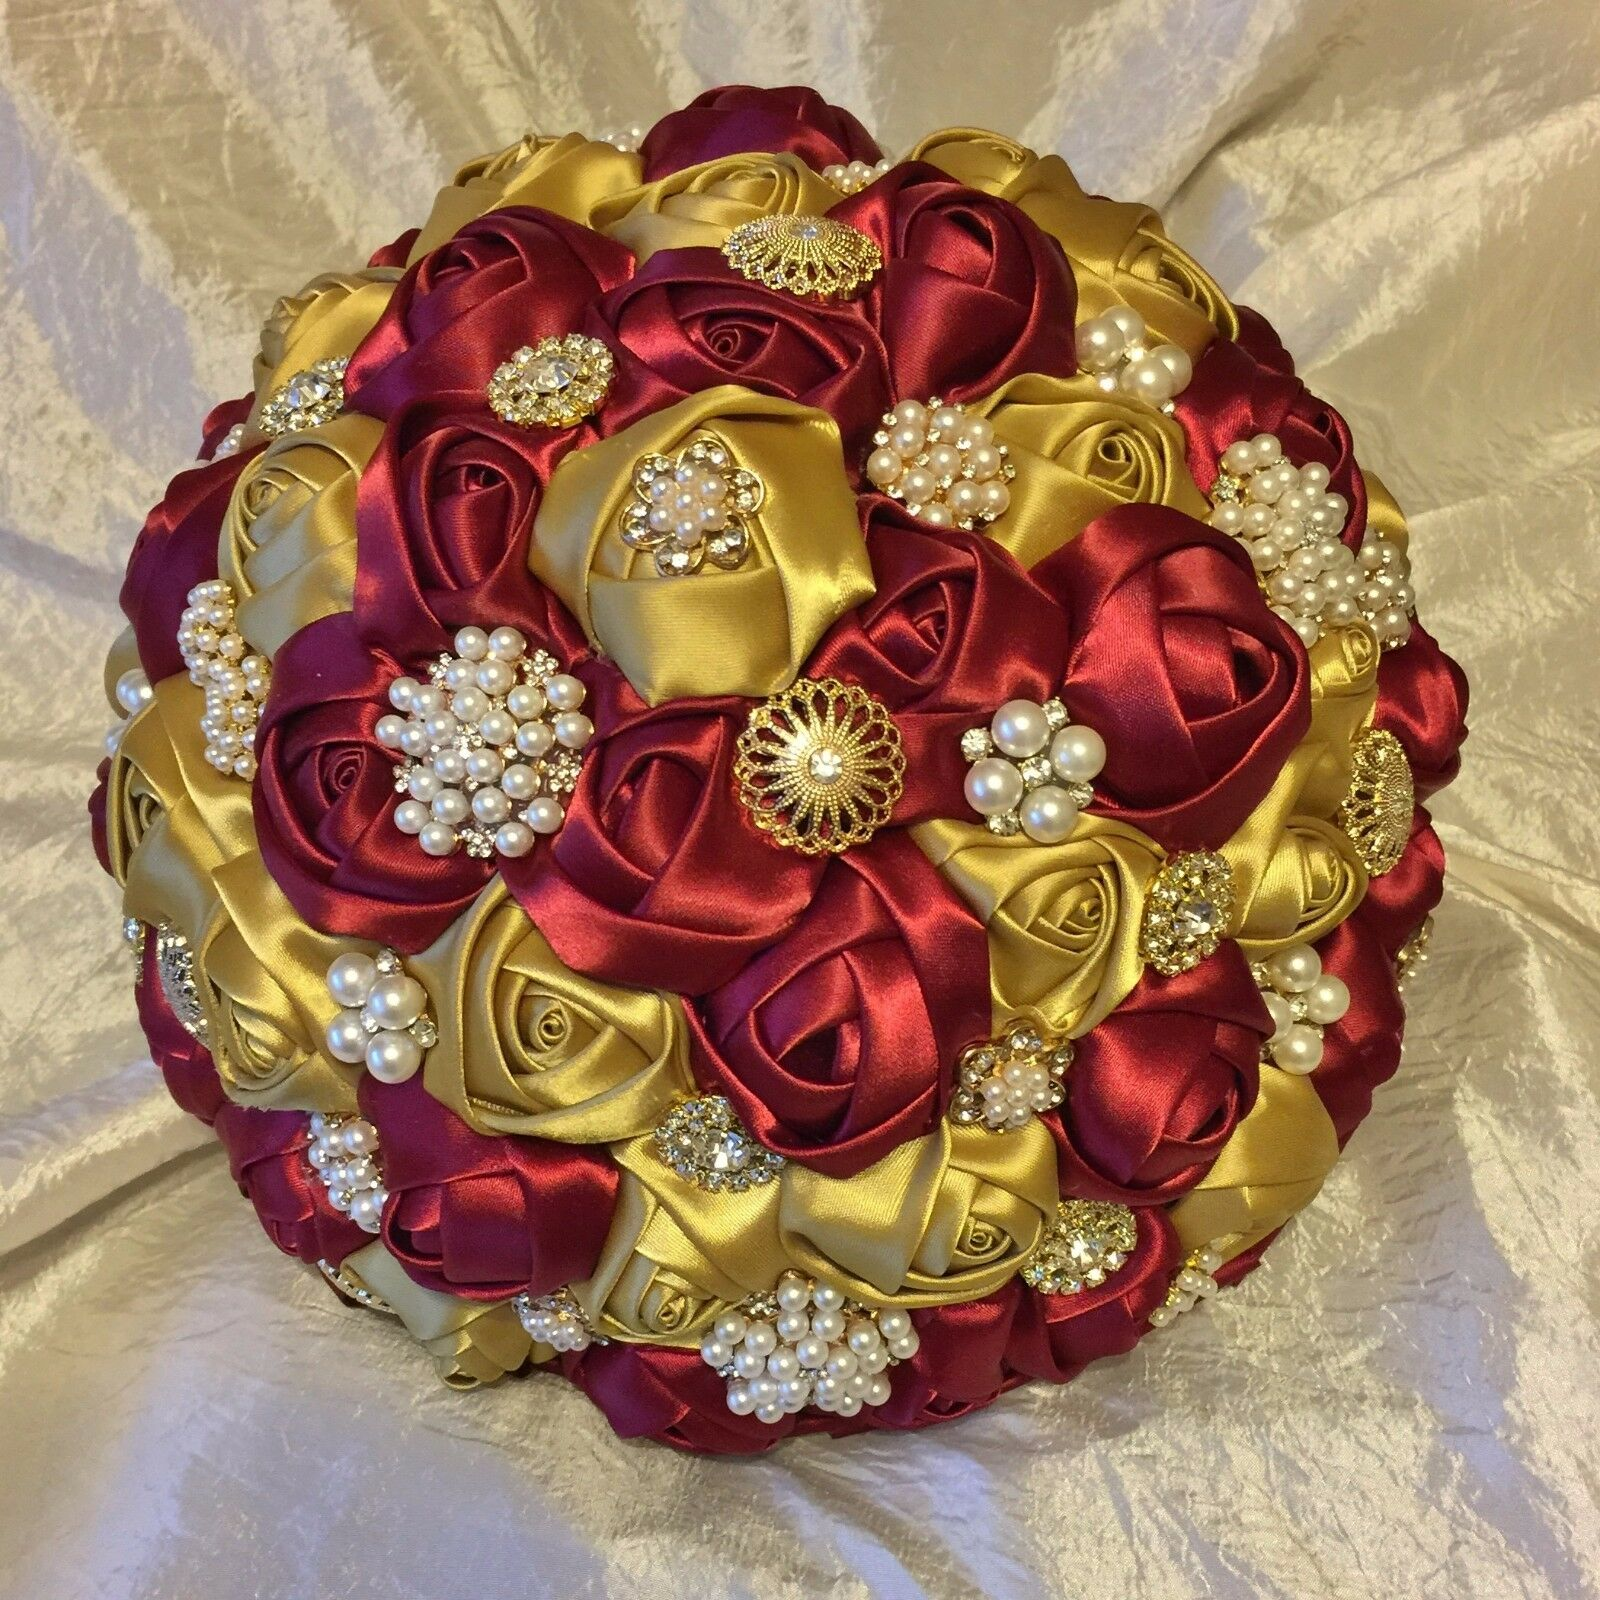 Handmade BOURGOGNE VIN OR ROSES broches Mariées Mariage Bouquet, Indian, Asian